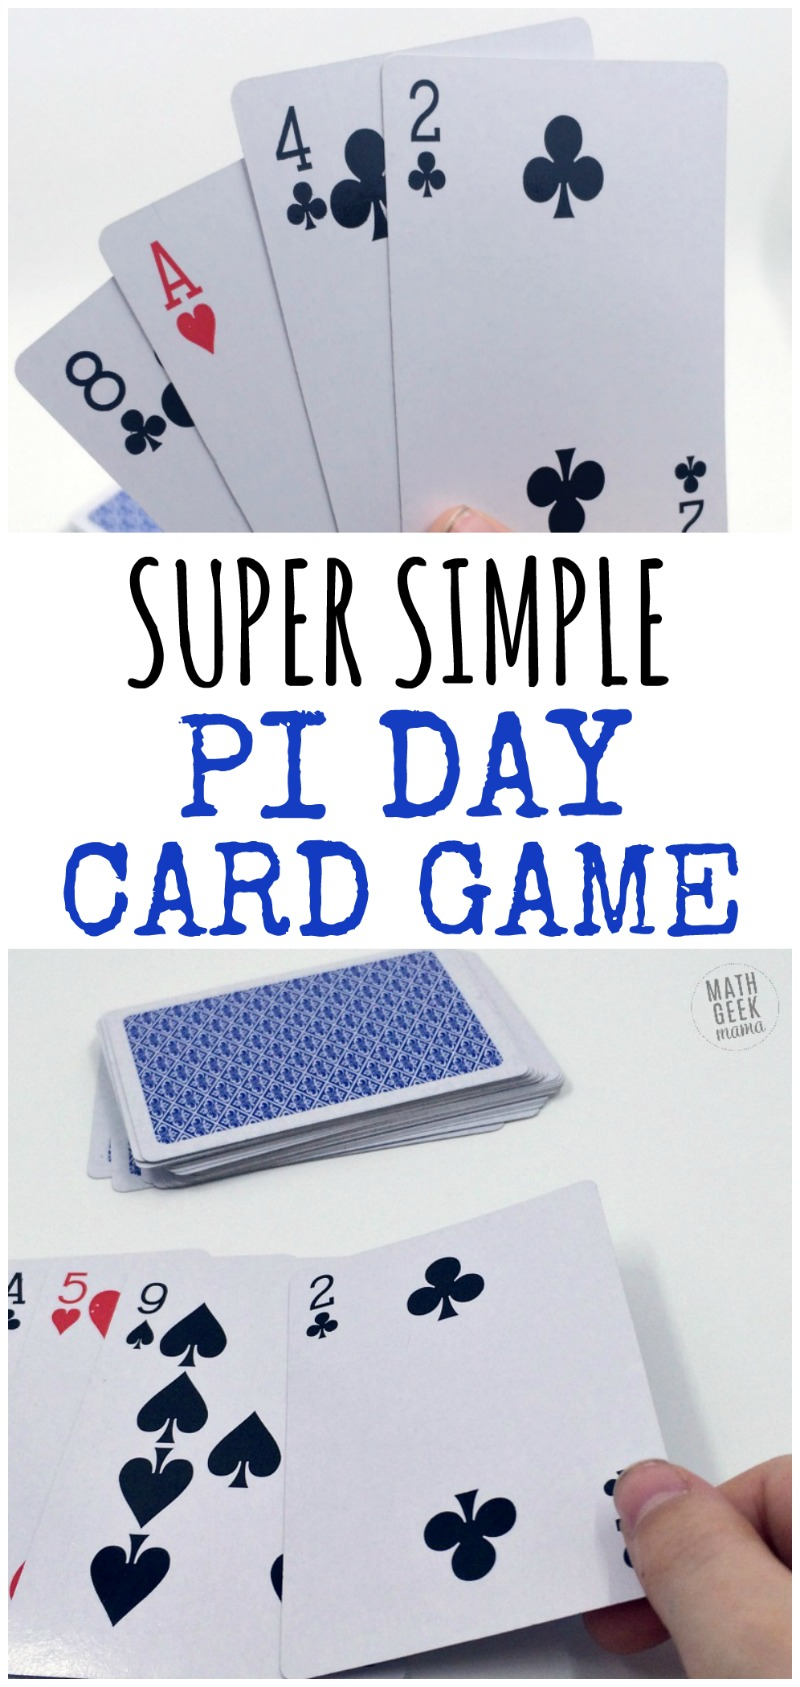 Want a super easy way to have fun with your kids on Pi Day? This Pi Day card game is great because kids of all ages can play together. Plus, there are variations to make it more challenging for older kids. Get excited about the number pi with this easy Pi Day game!